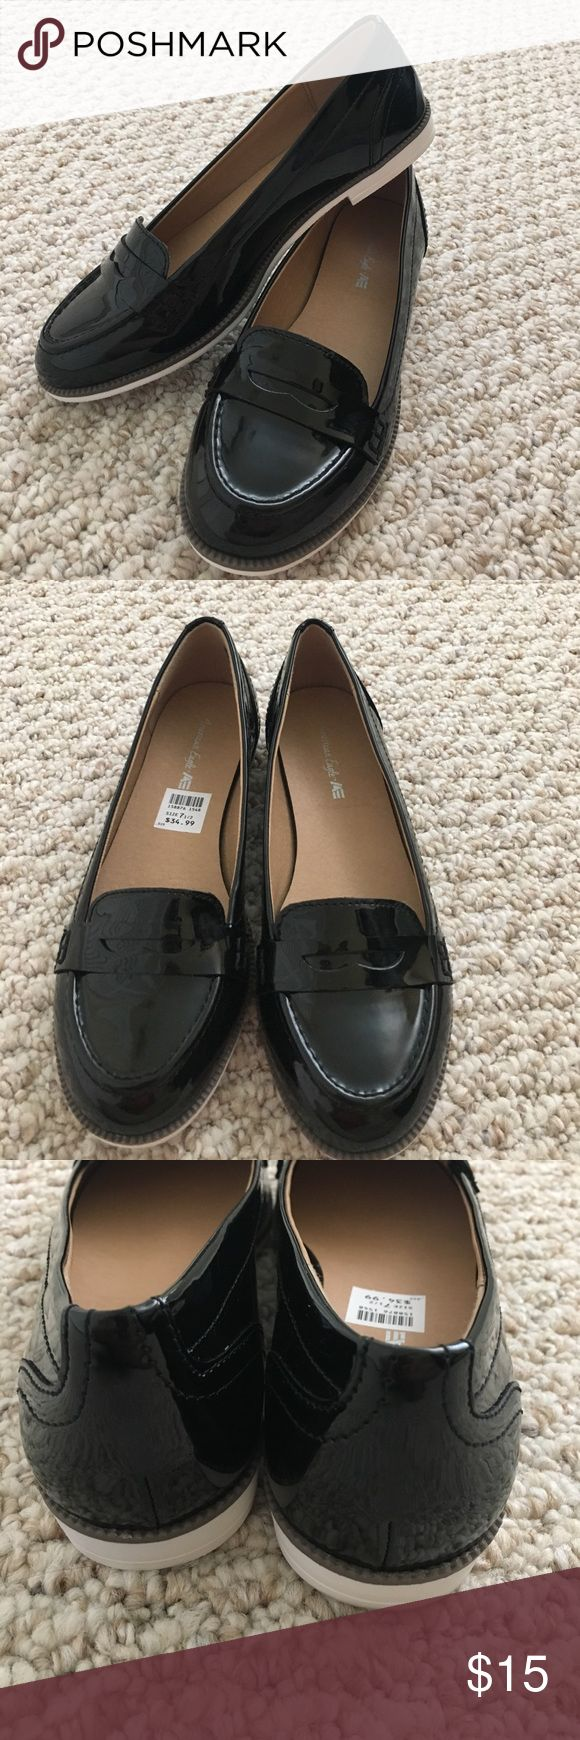 American Eagle black loafers.  Size 7.5 EUC American Eagle black patent-like loafers.  EUC, only wore for 1 hour.  Wish they fit me, true to size 7.5. Comes without shoe box. American Eagle Outfitters Shoes Flats & Loafers